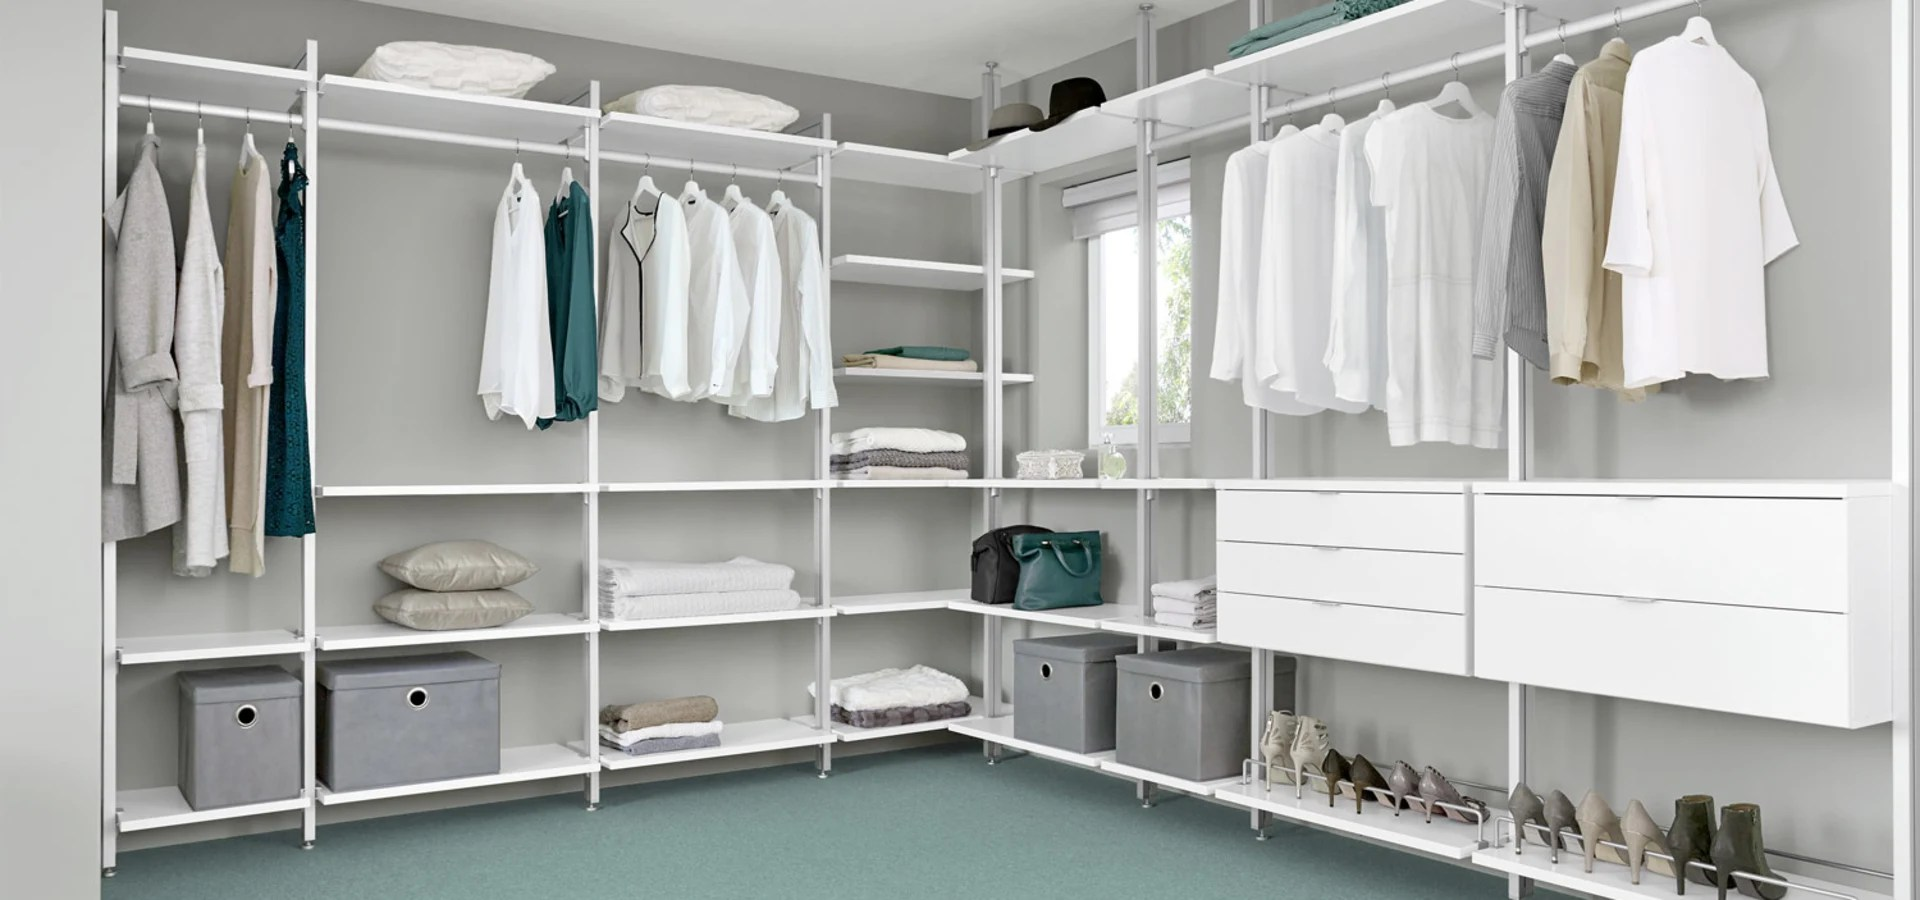 Regalraum Walk In Wardrobe By Regalraum Uk Homify